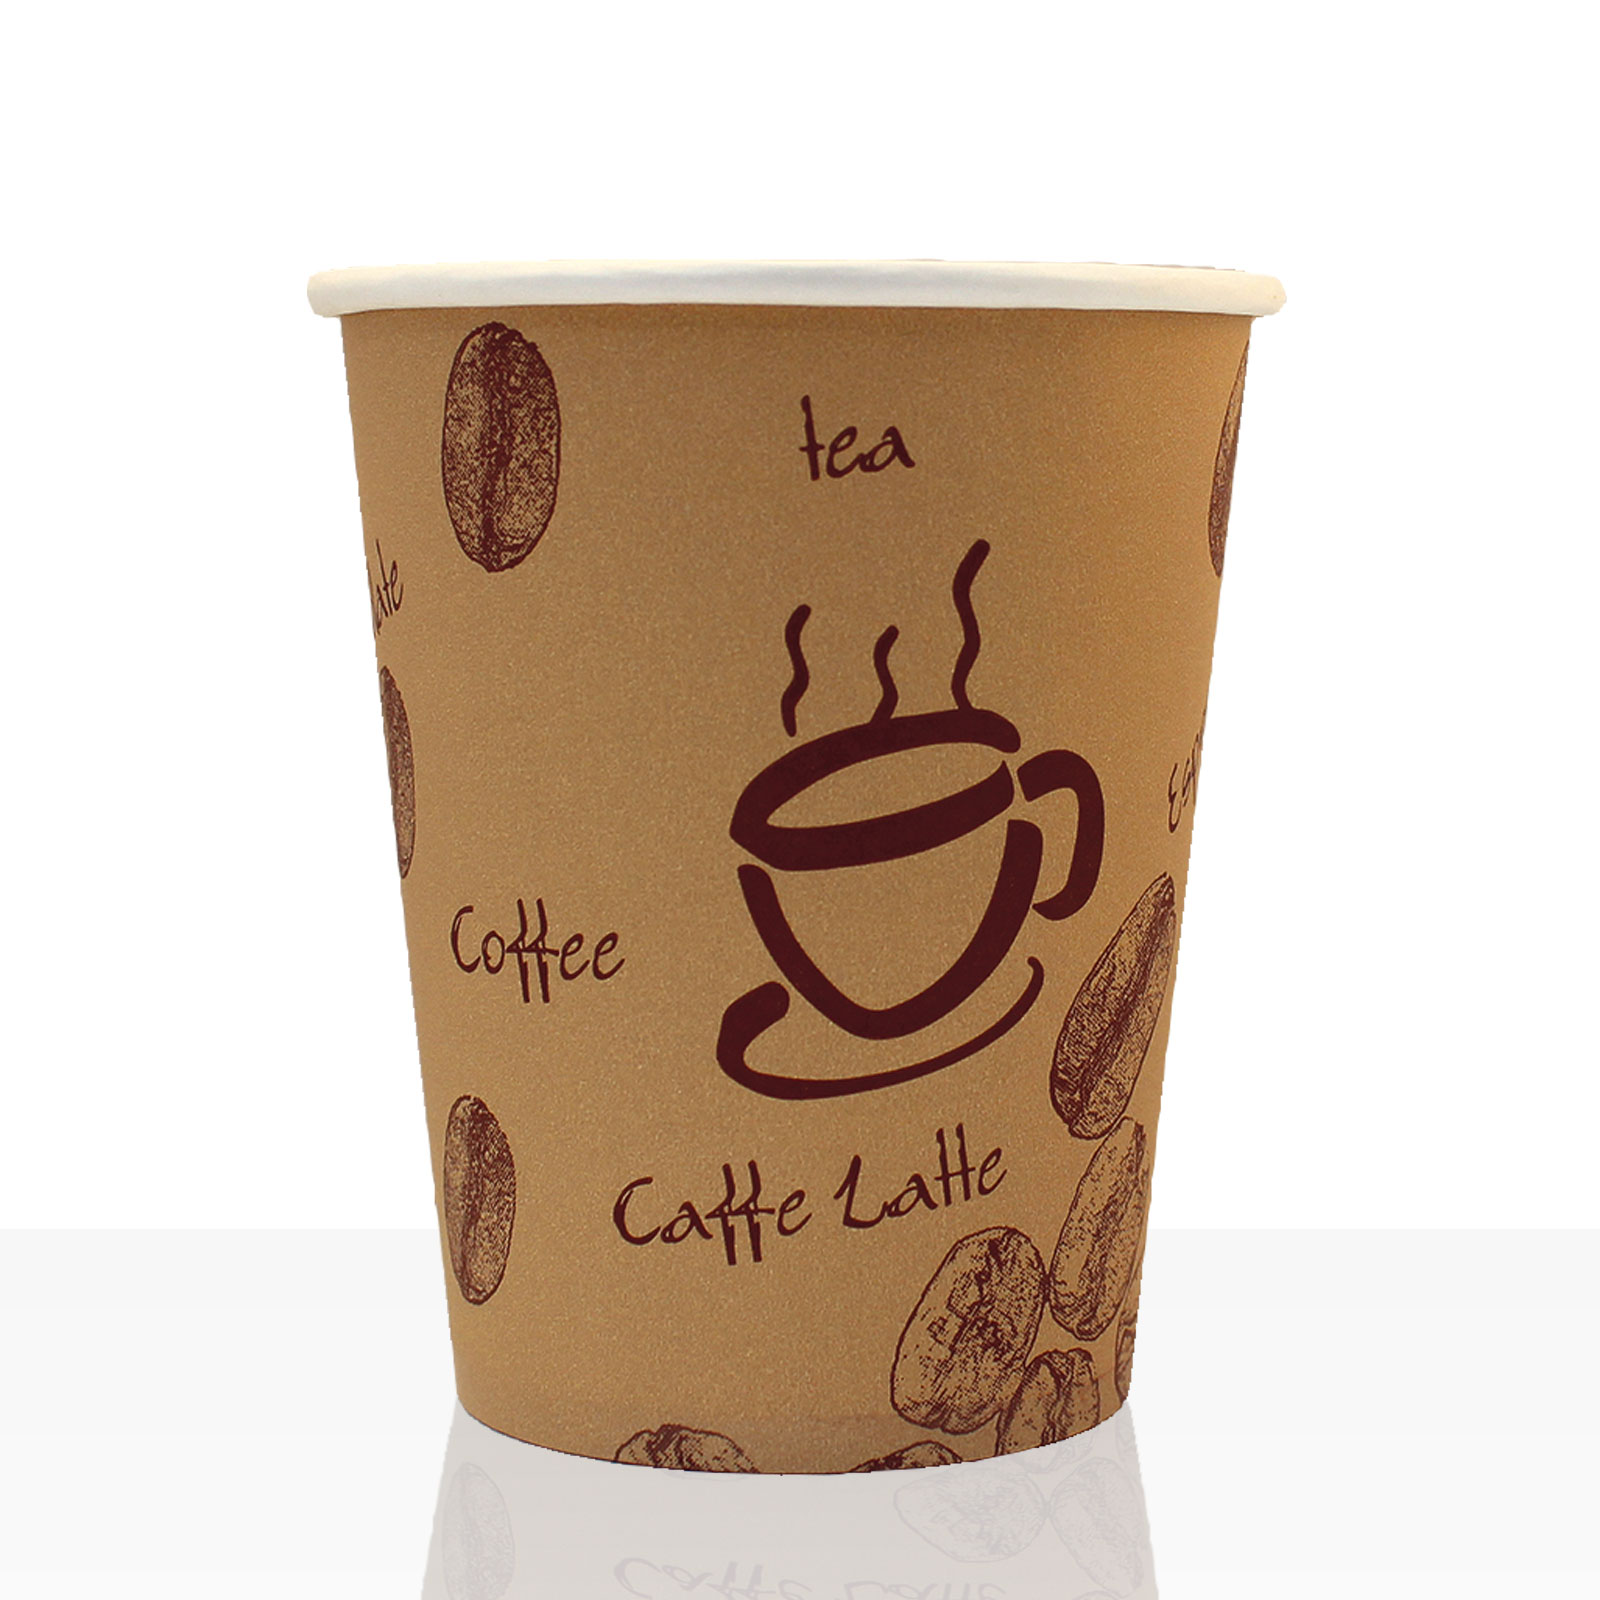 Coffee to go Becher aus Hartpapier 0,2l, 1000Stk, Pappbecher, Kaffeebecher to go